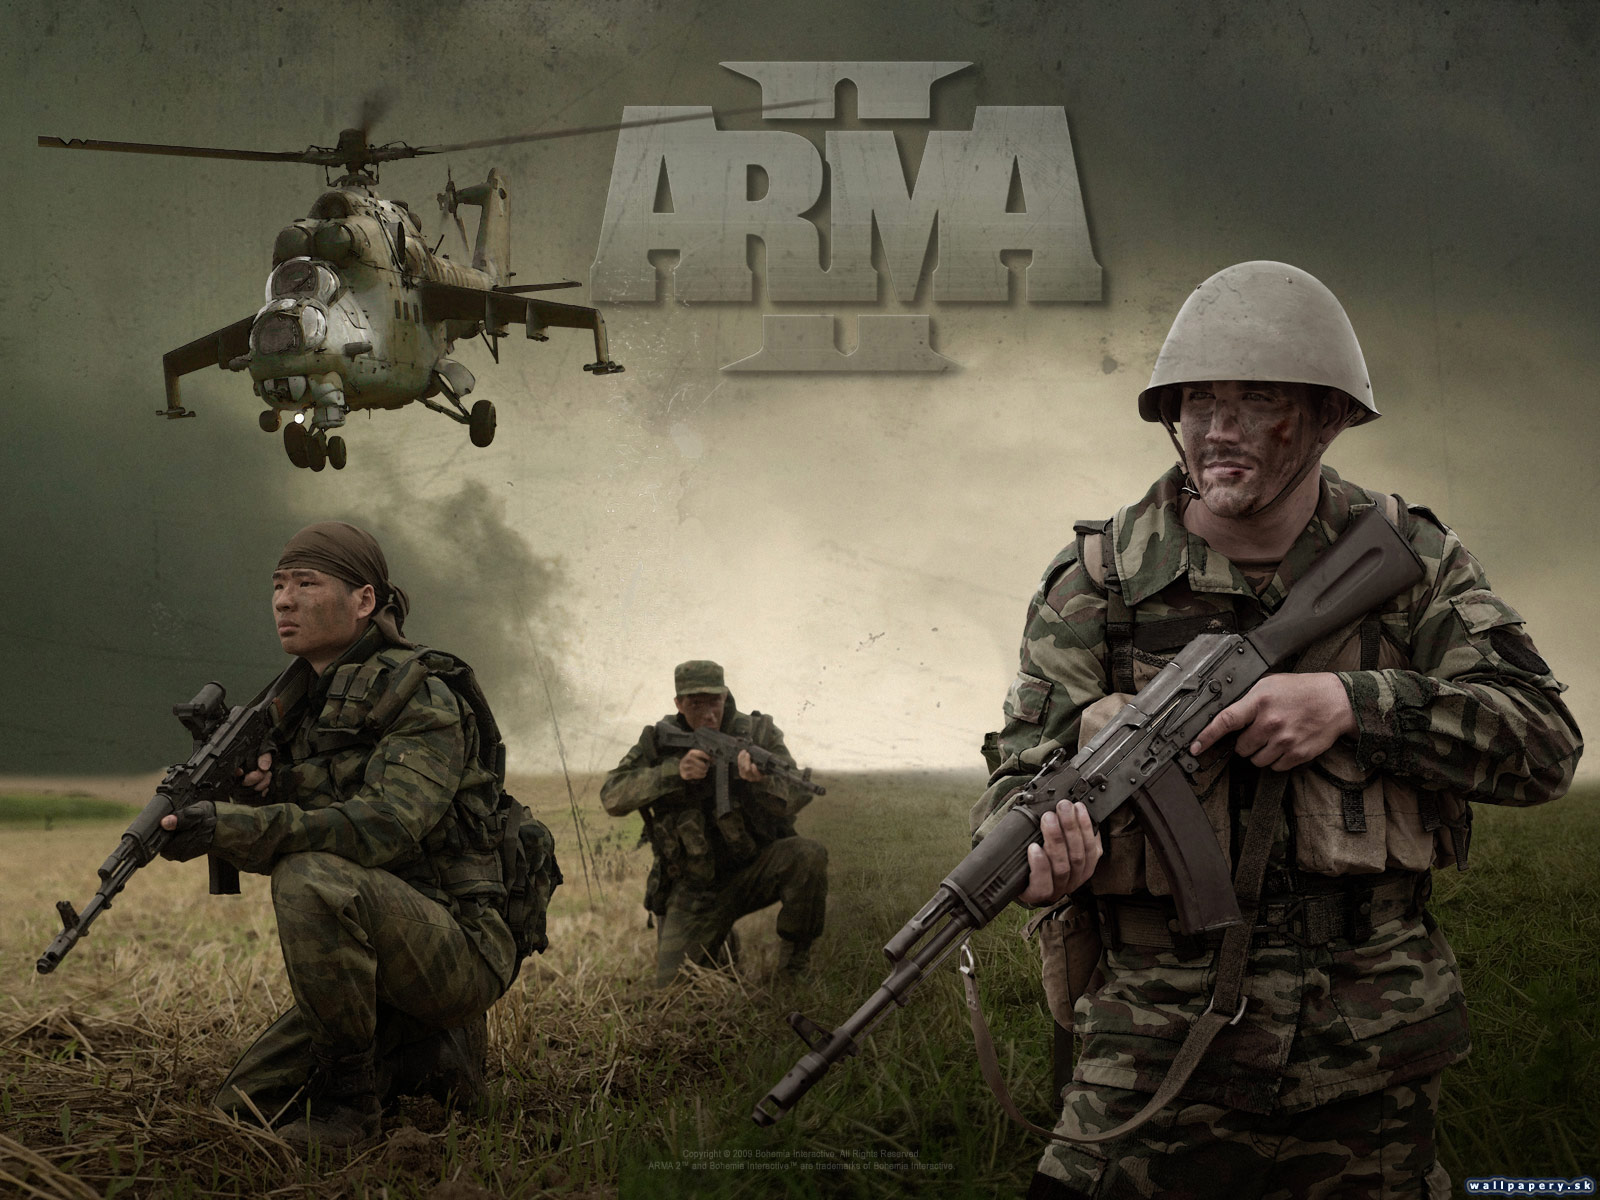 ARMA II RU (Steam GIFT) + discount + GIFTS